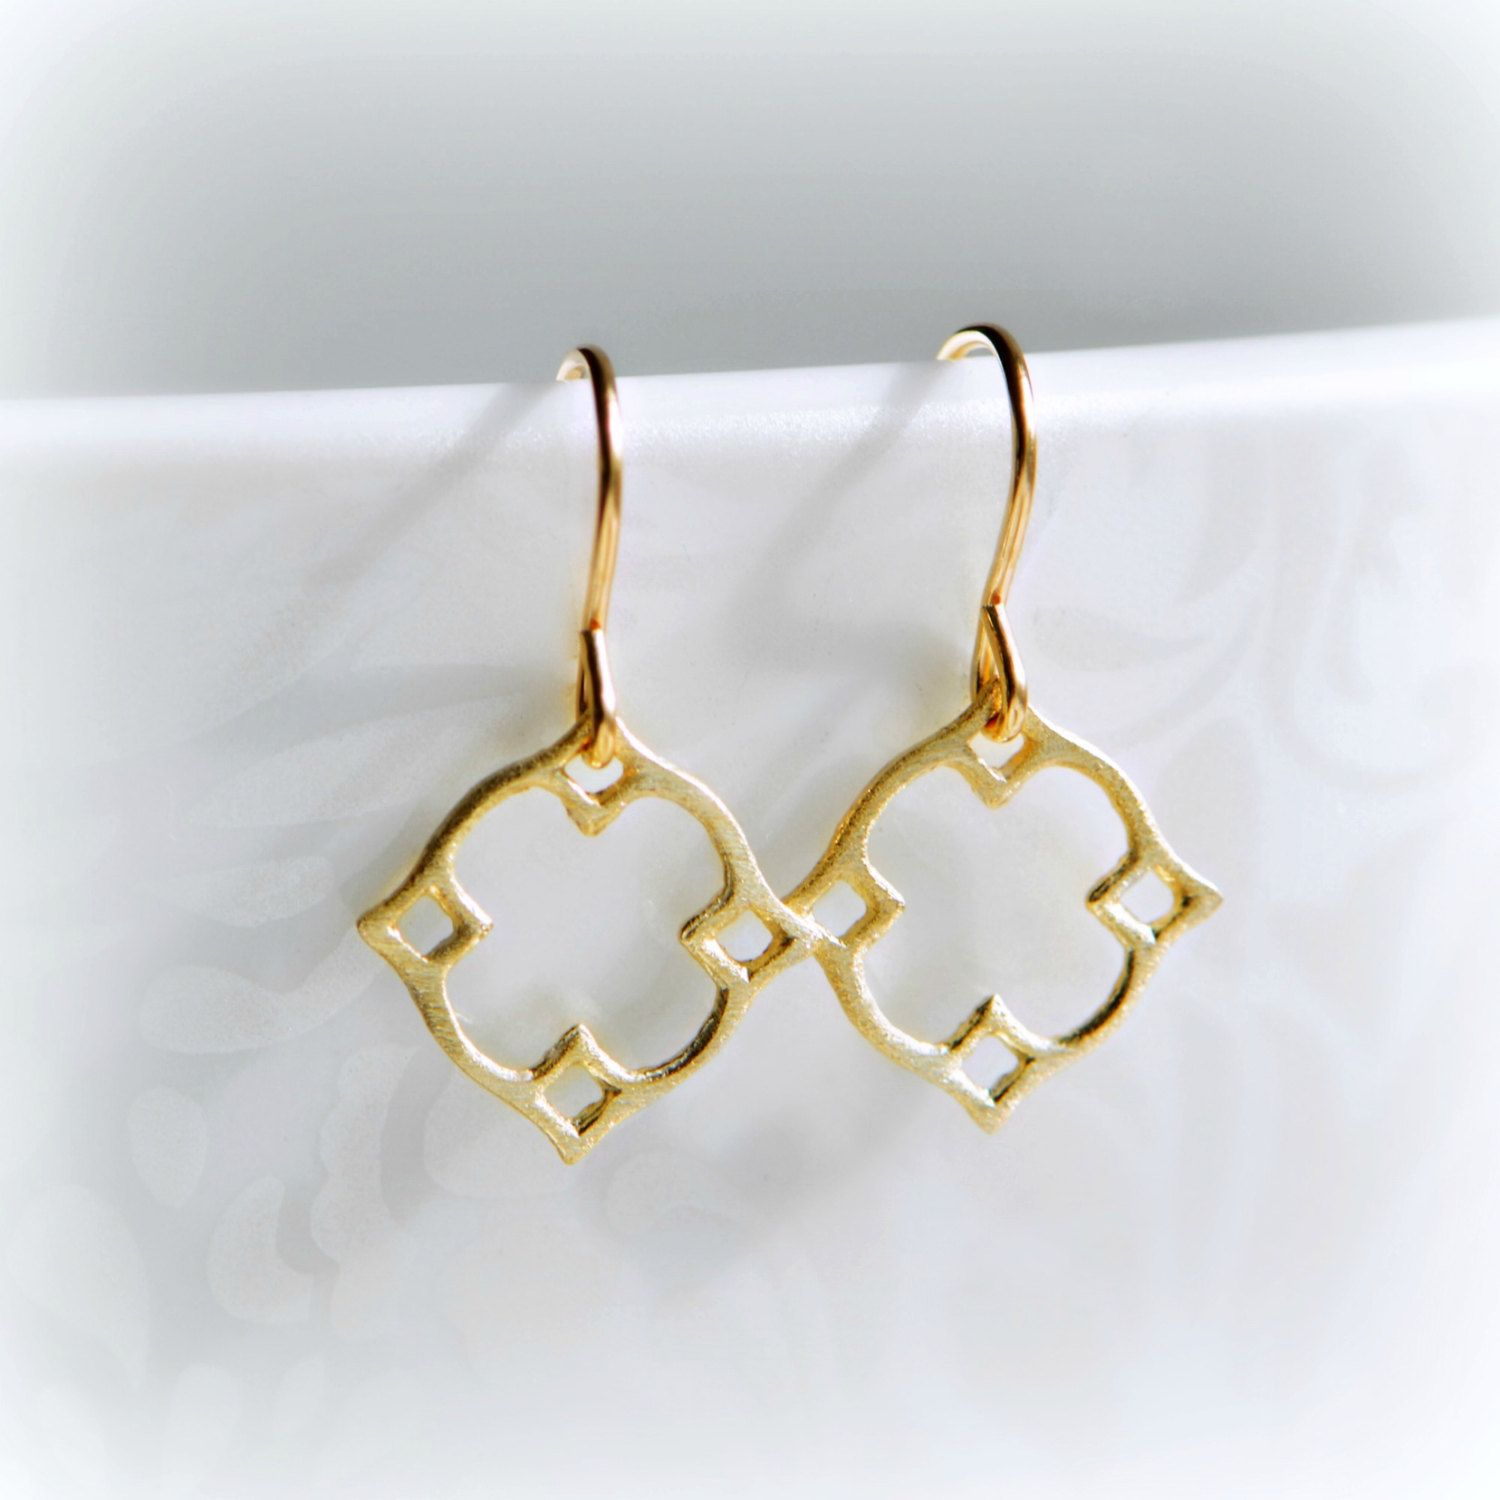 co products chace delicate earrings tear collections wire dsc earring llc gold jewelry drop